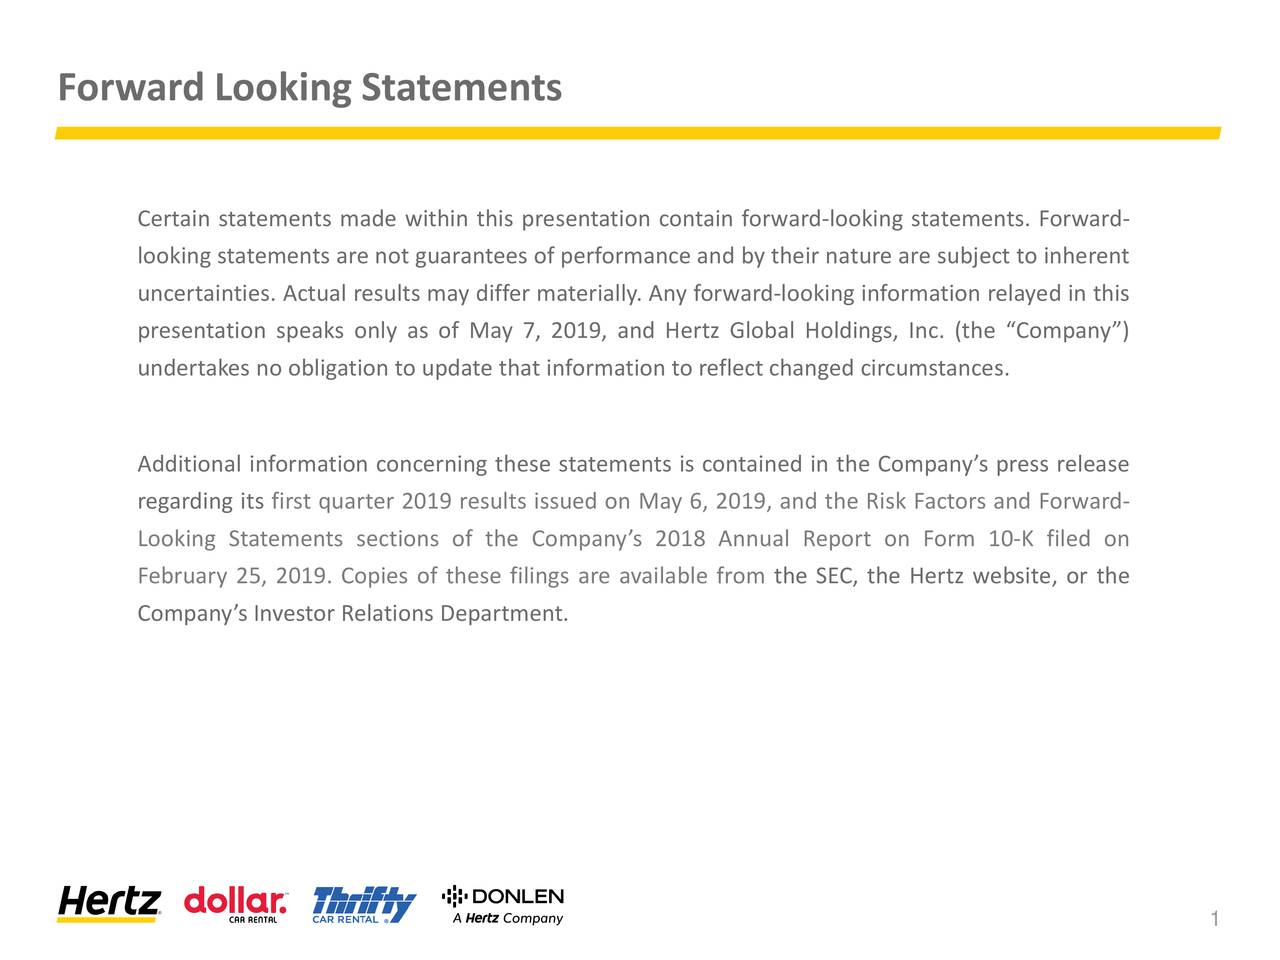 """Certain statements made within this presentation contain forward-looking statements. Forward- looking statements are not guarantees of performance and by their nature are subject to inherent uncertainties. Actual results may differ materially. Any forward-looking information relayed in this presentation speaks only as of May 7, 2019, and Hertz Global Holdings, Inc. (the """"Company"""") undertakes no obligation to update that information to reflect changed circumstances. Additional information concerning these statements is contained in the Company's press release regarding its first quarter 2019 results issued on May 6, 2019, and the Risk Factors and Forward- Looking Statements sections of the Company's 2018 Annual Report on Form 10-K filed on February 25, 2019. Copies of these filings are available from the SEC, the Hertz website, or the Company's Investor Relations Department. 1"""